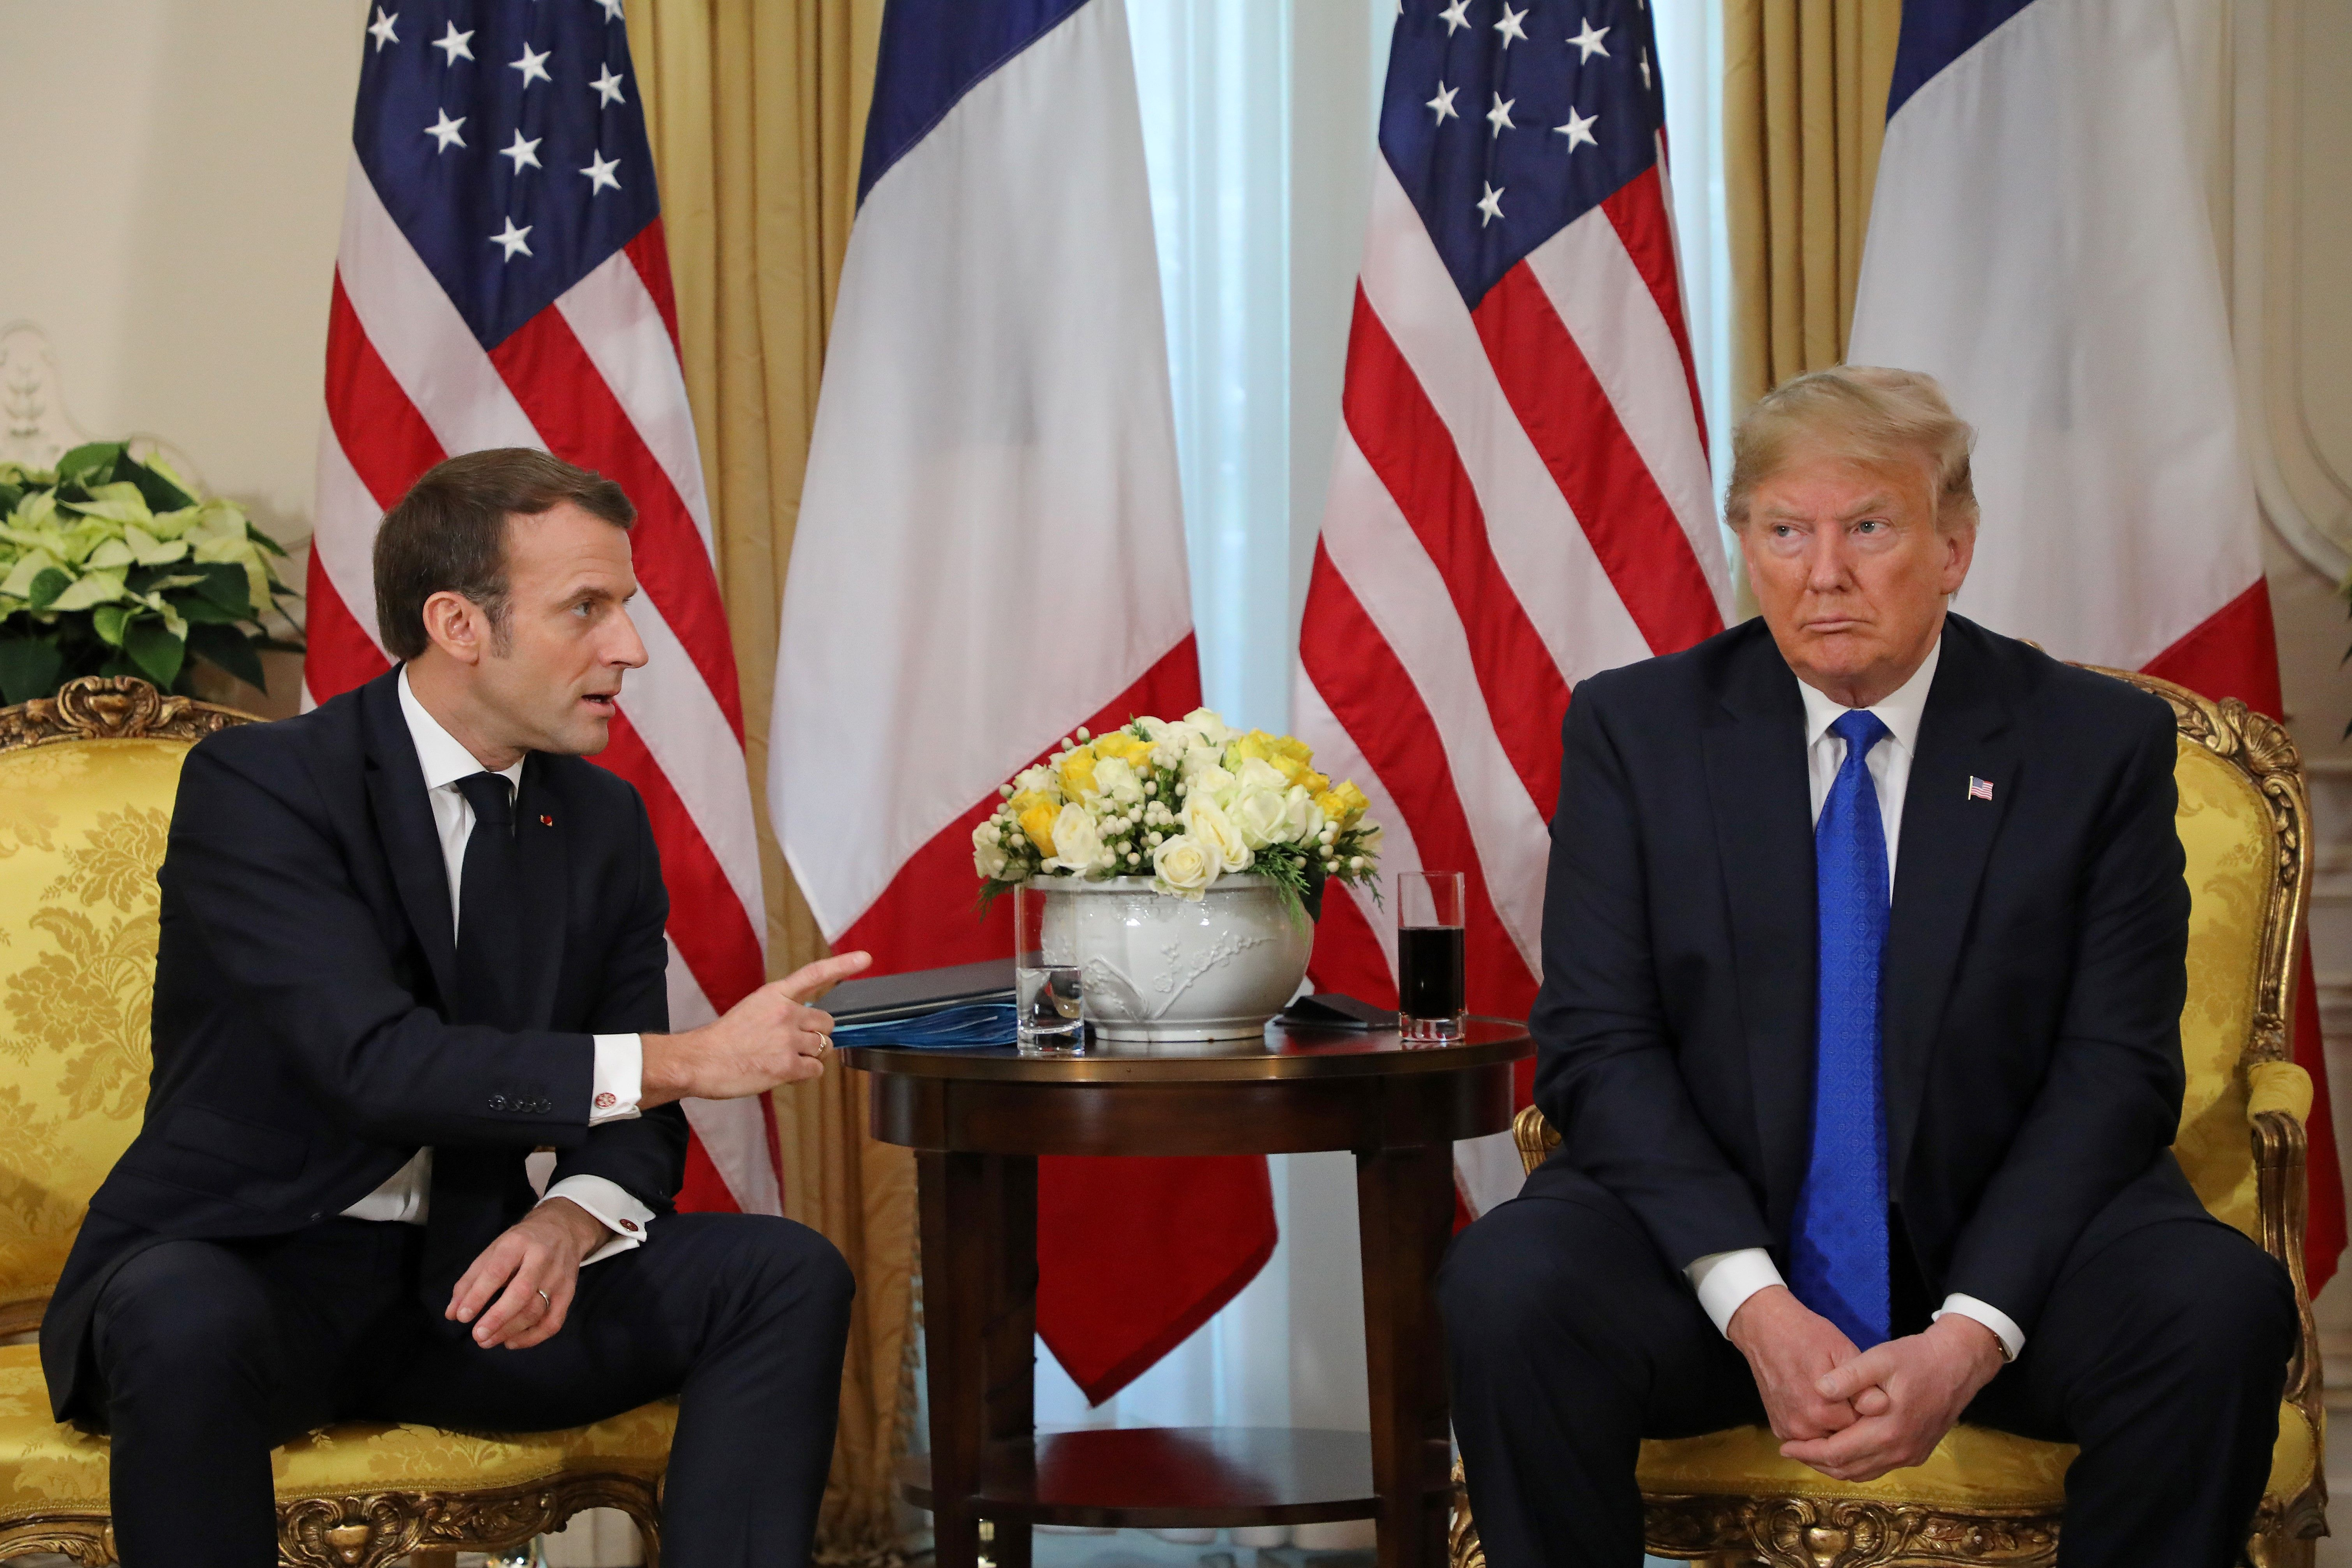 Would you like some nice ISIS fighters? Trump trolls Macron at NATO summit